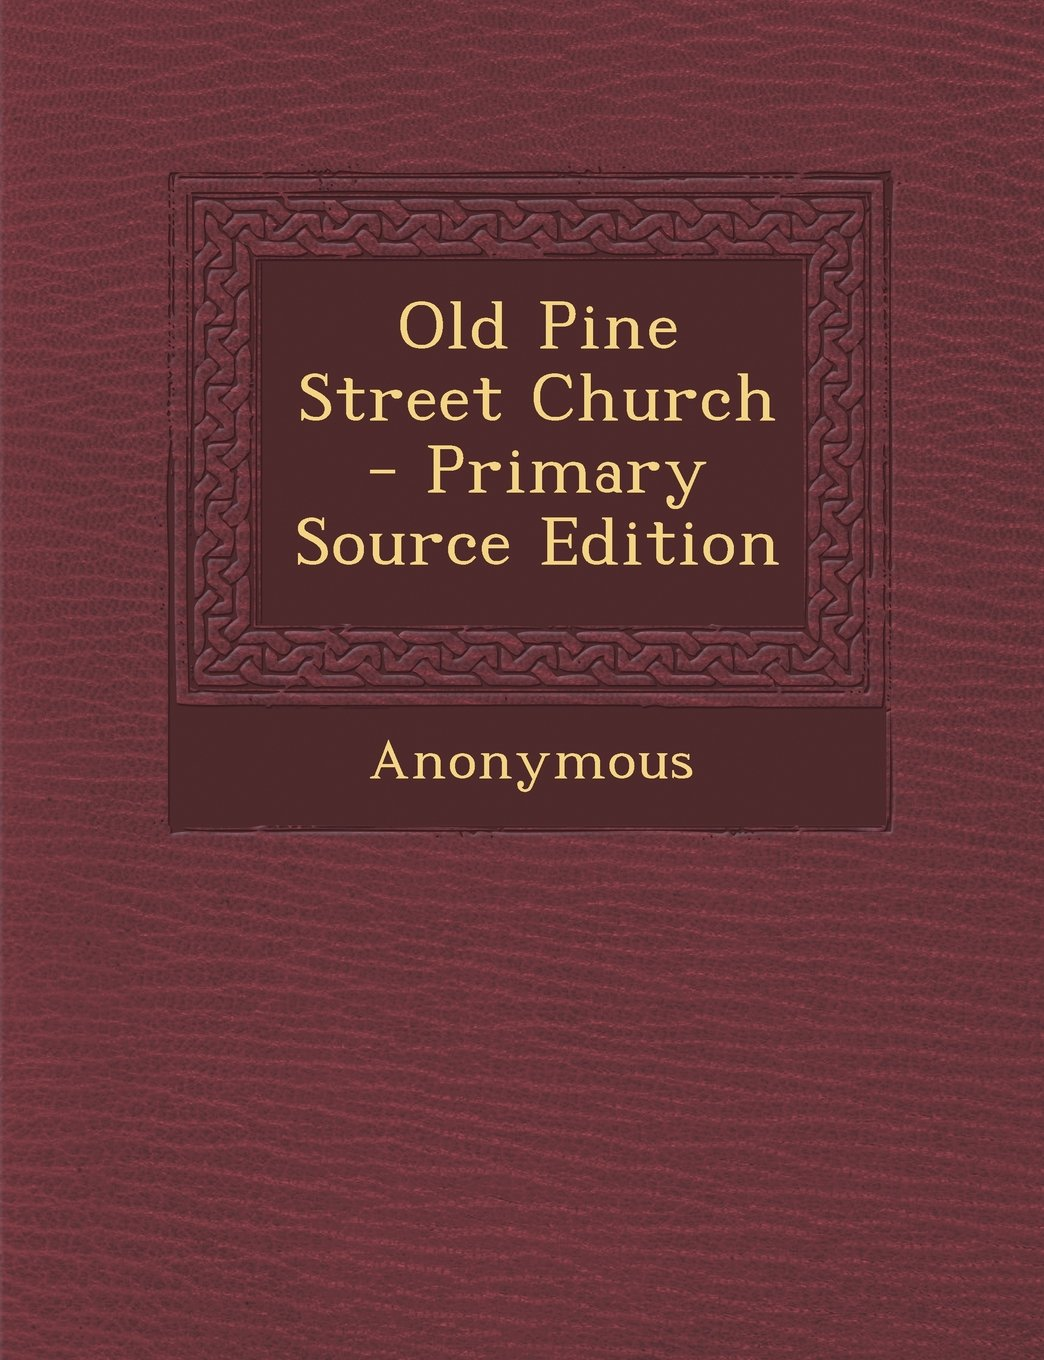 Old Pine Street Church - Primary Source Edition ebook